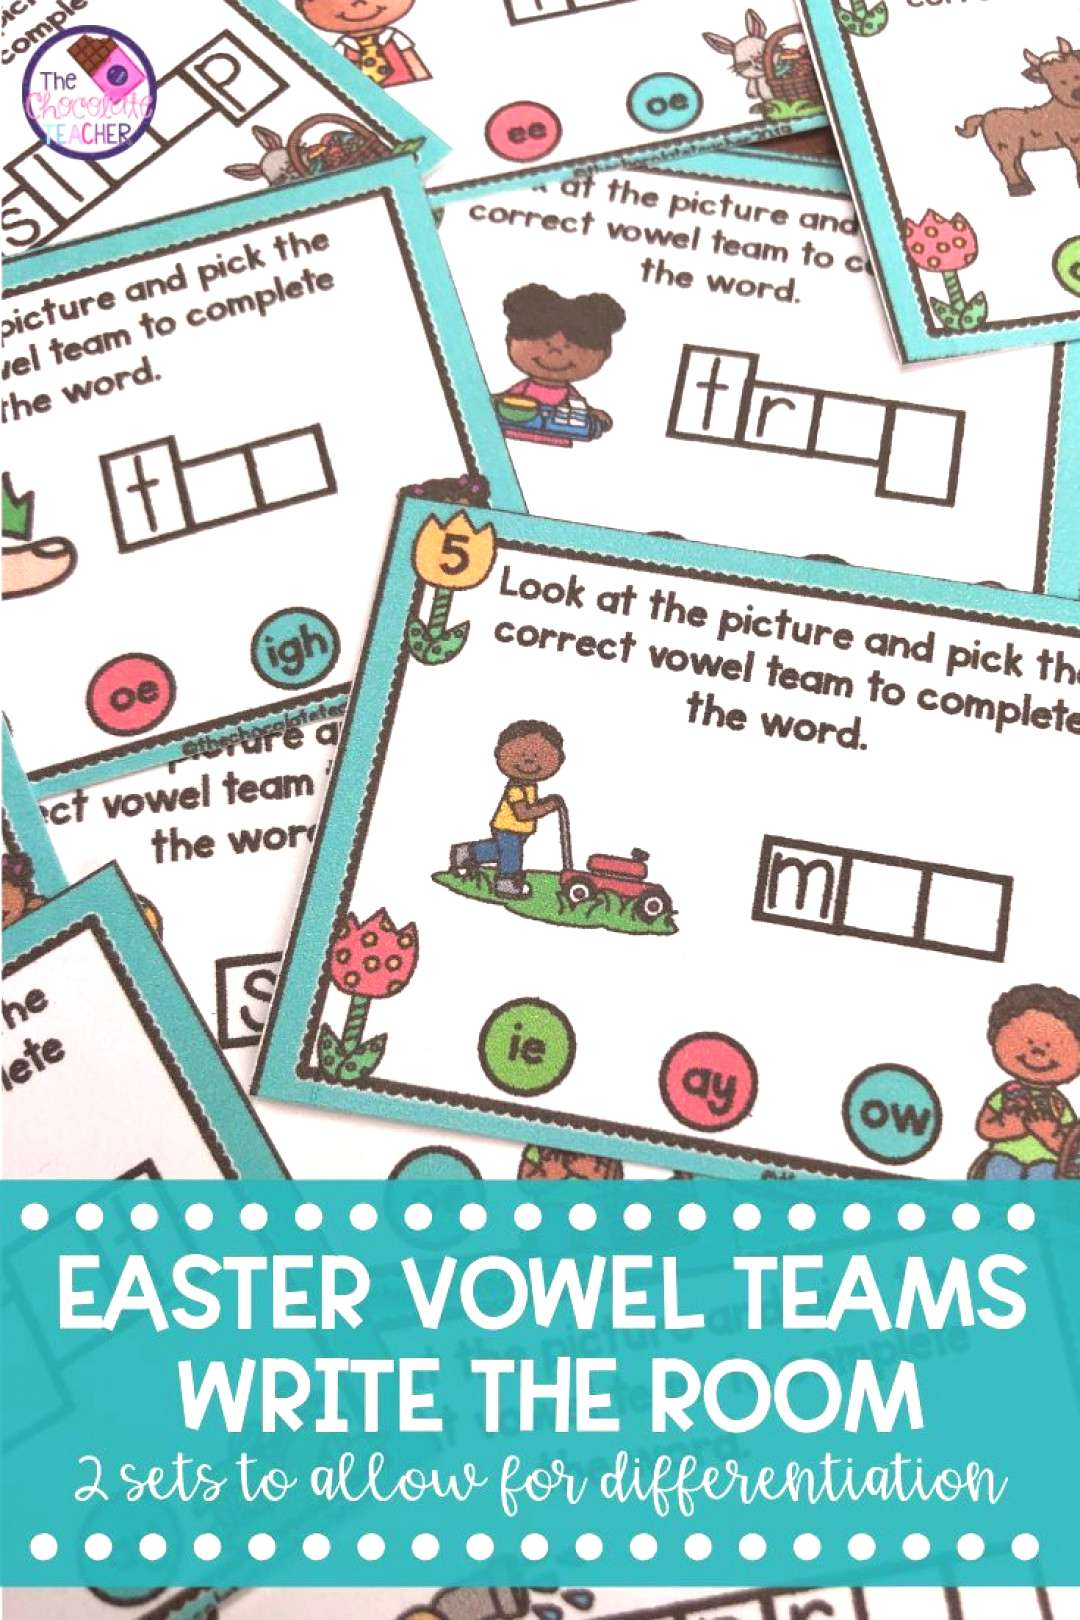 Long Vowel Teams Write the Room Activity Spring Bunny amp Eggs Lets Write the Room with long vowel t